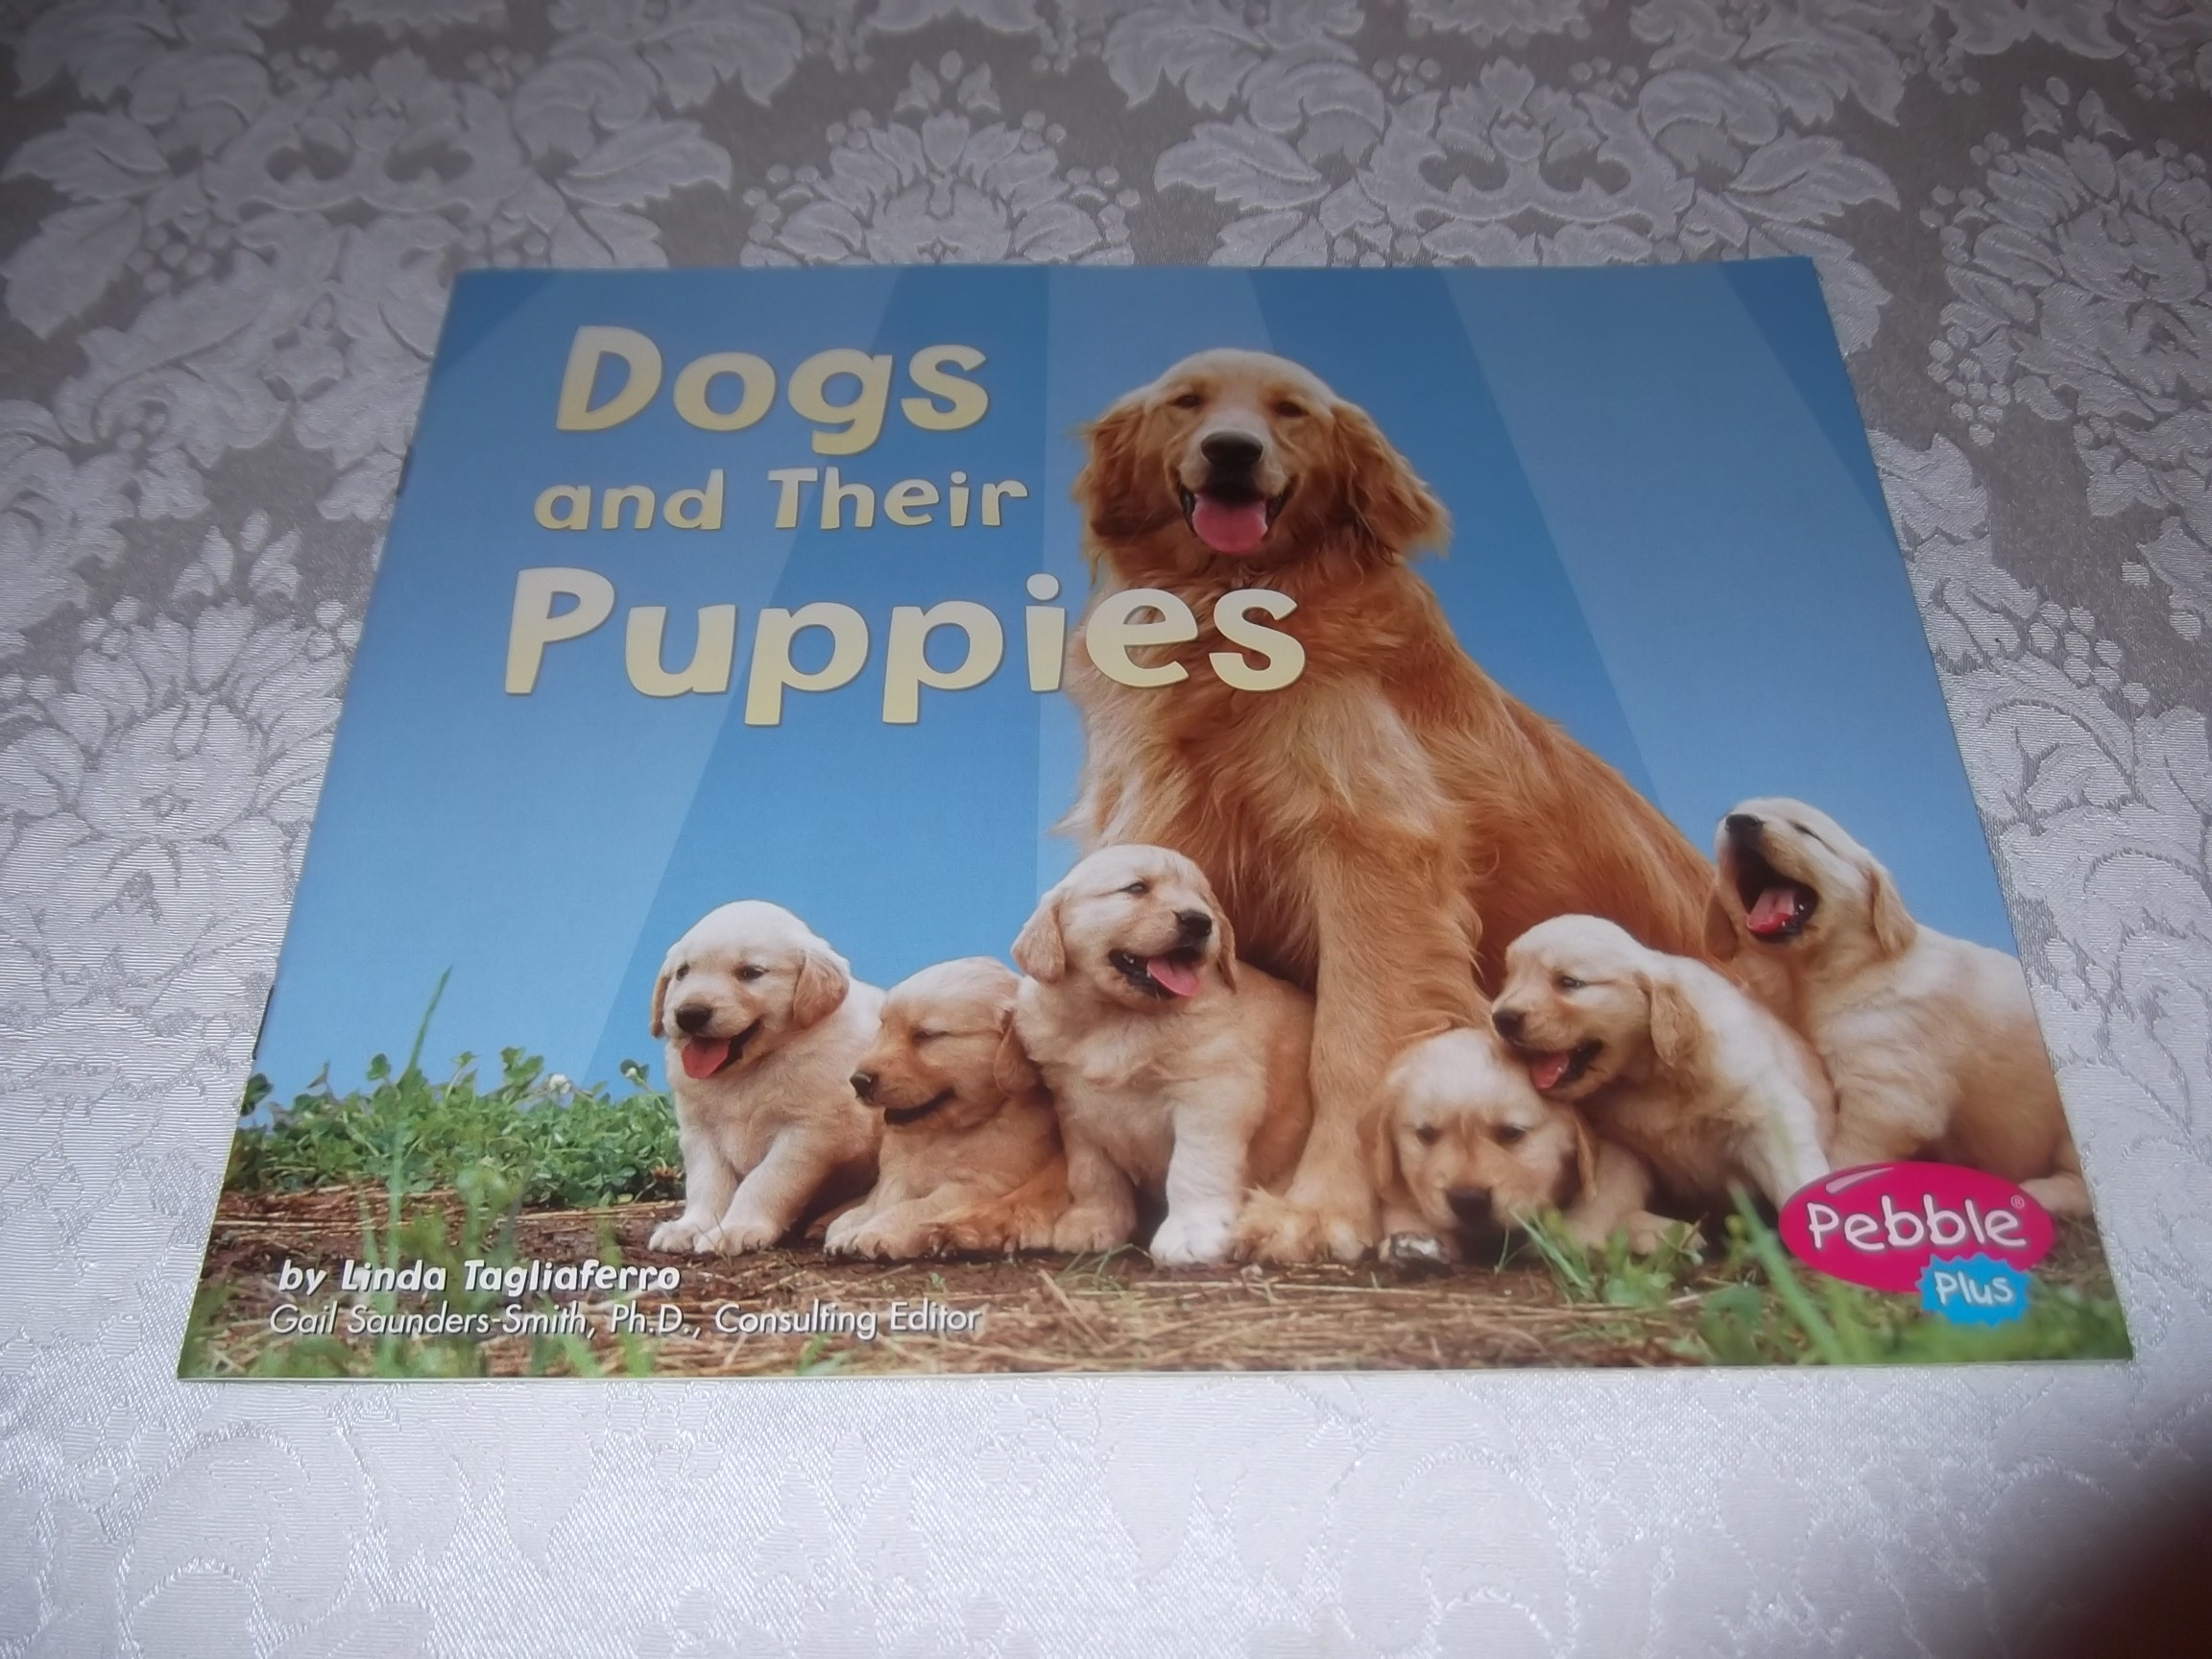 '.Dogs and Their Puppies.'